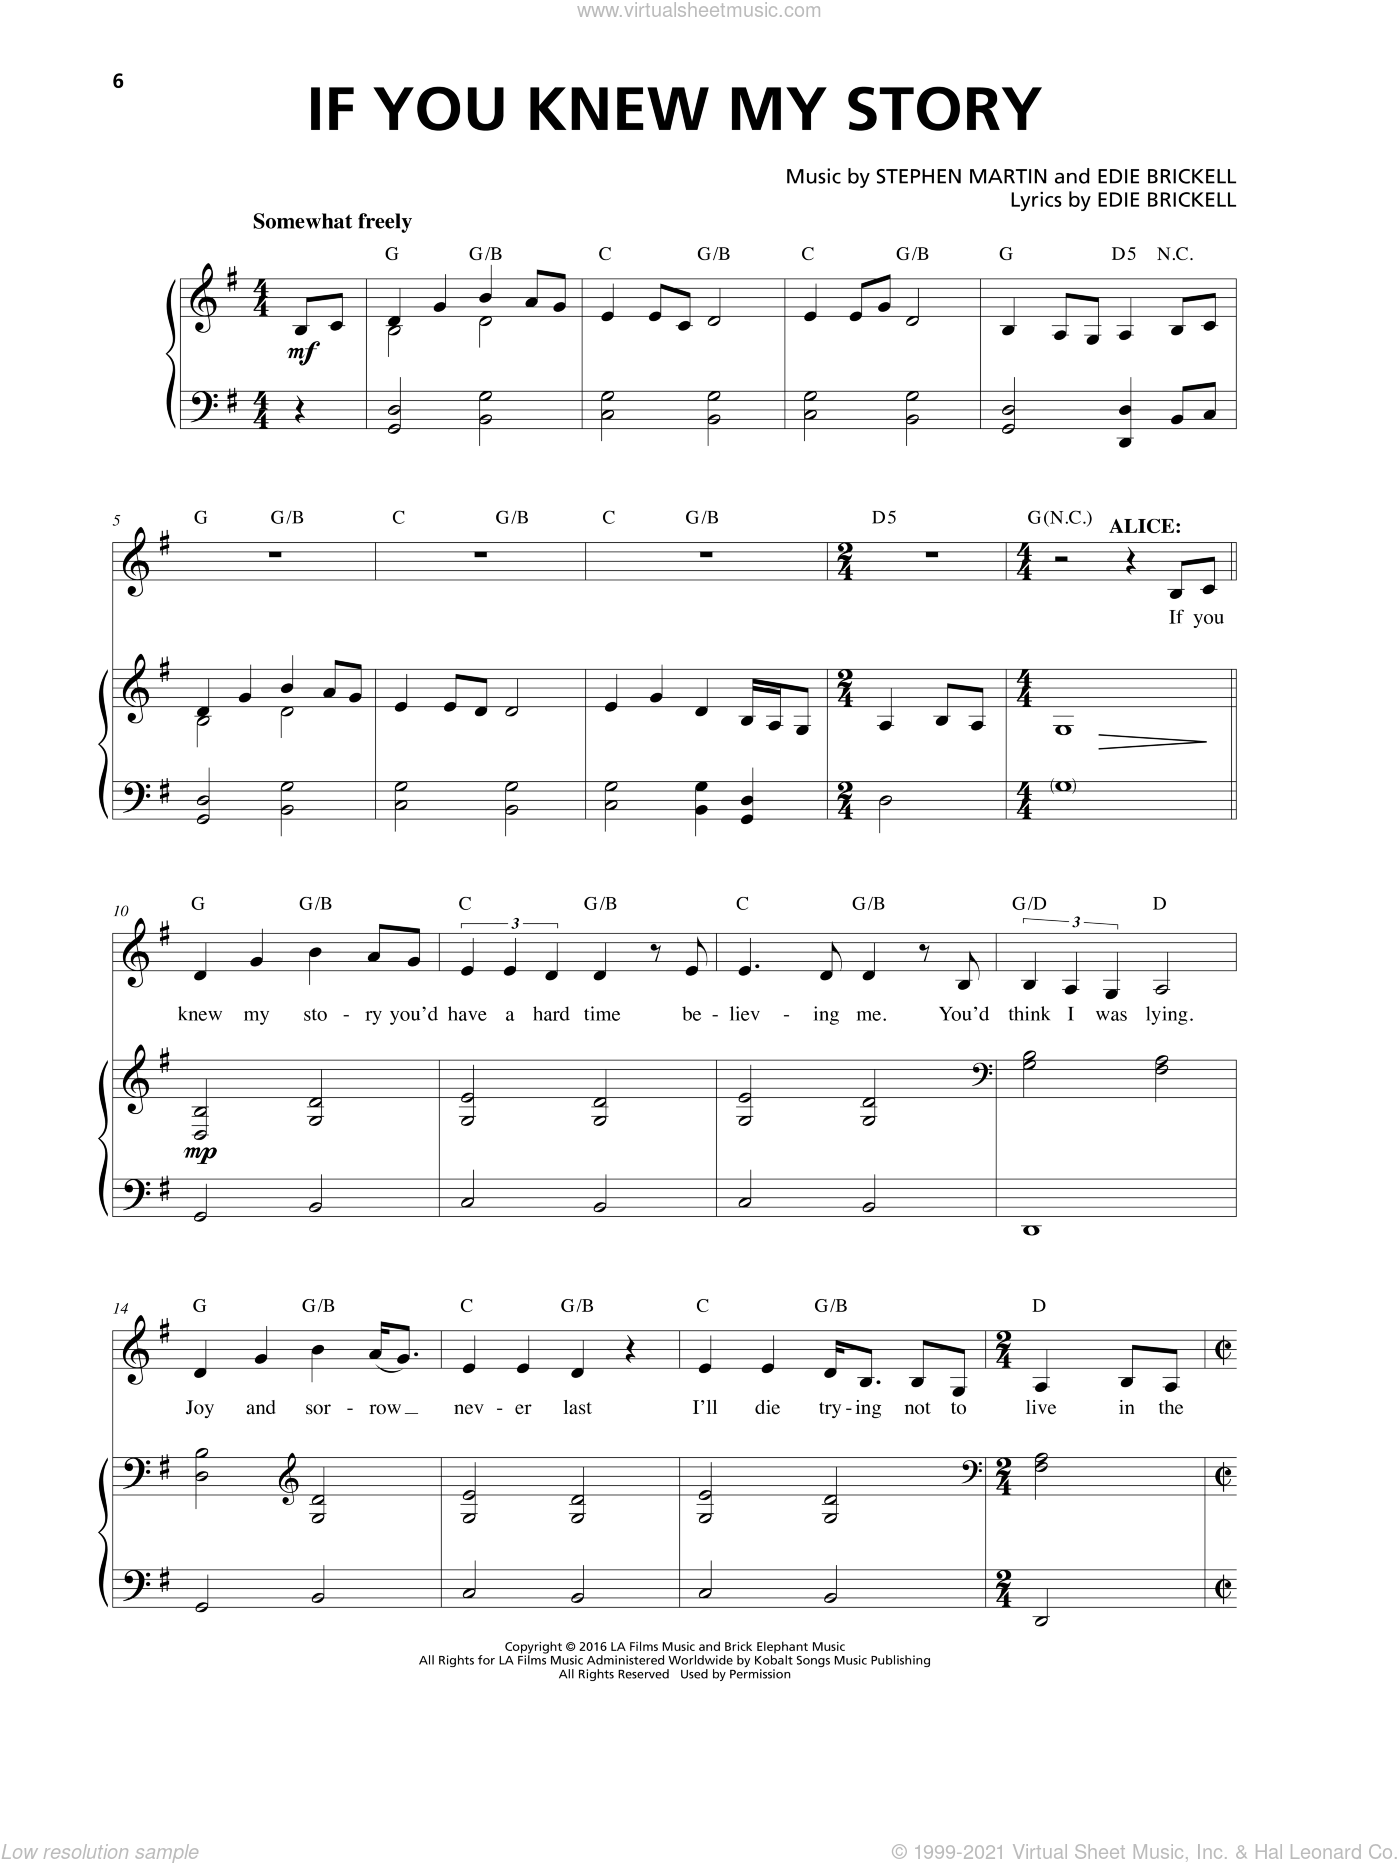 If You Knew My Story sheet music for voice and piano by Edie Brickell, Stephen Martin and Stephen Martin & Edie Brickell, intermediate skill level